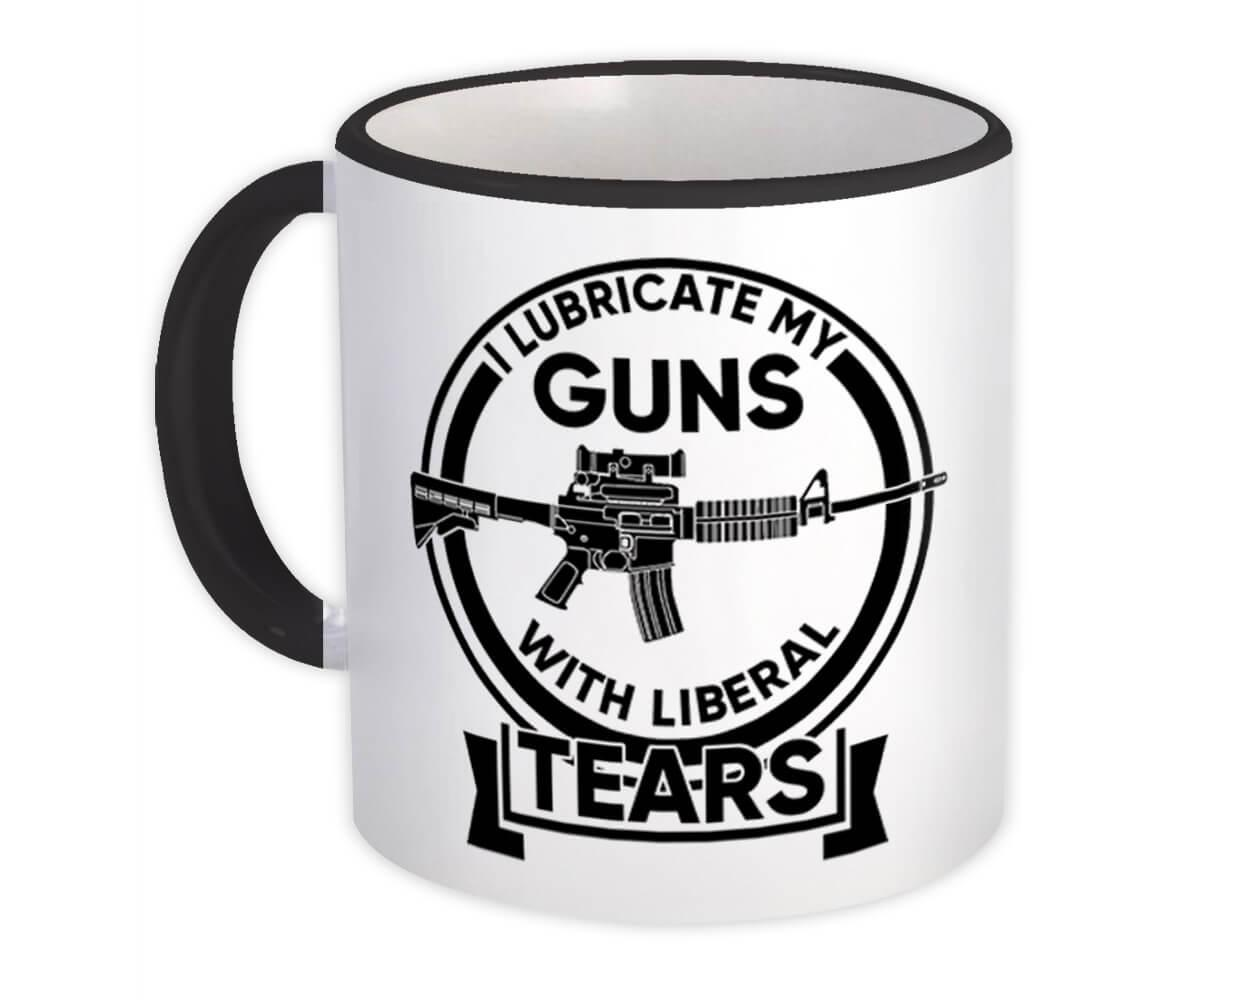 Lubricate Guns Liberal Tears : Gift Mug 2nd Amendment NRA Riffle Arms